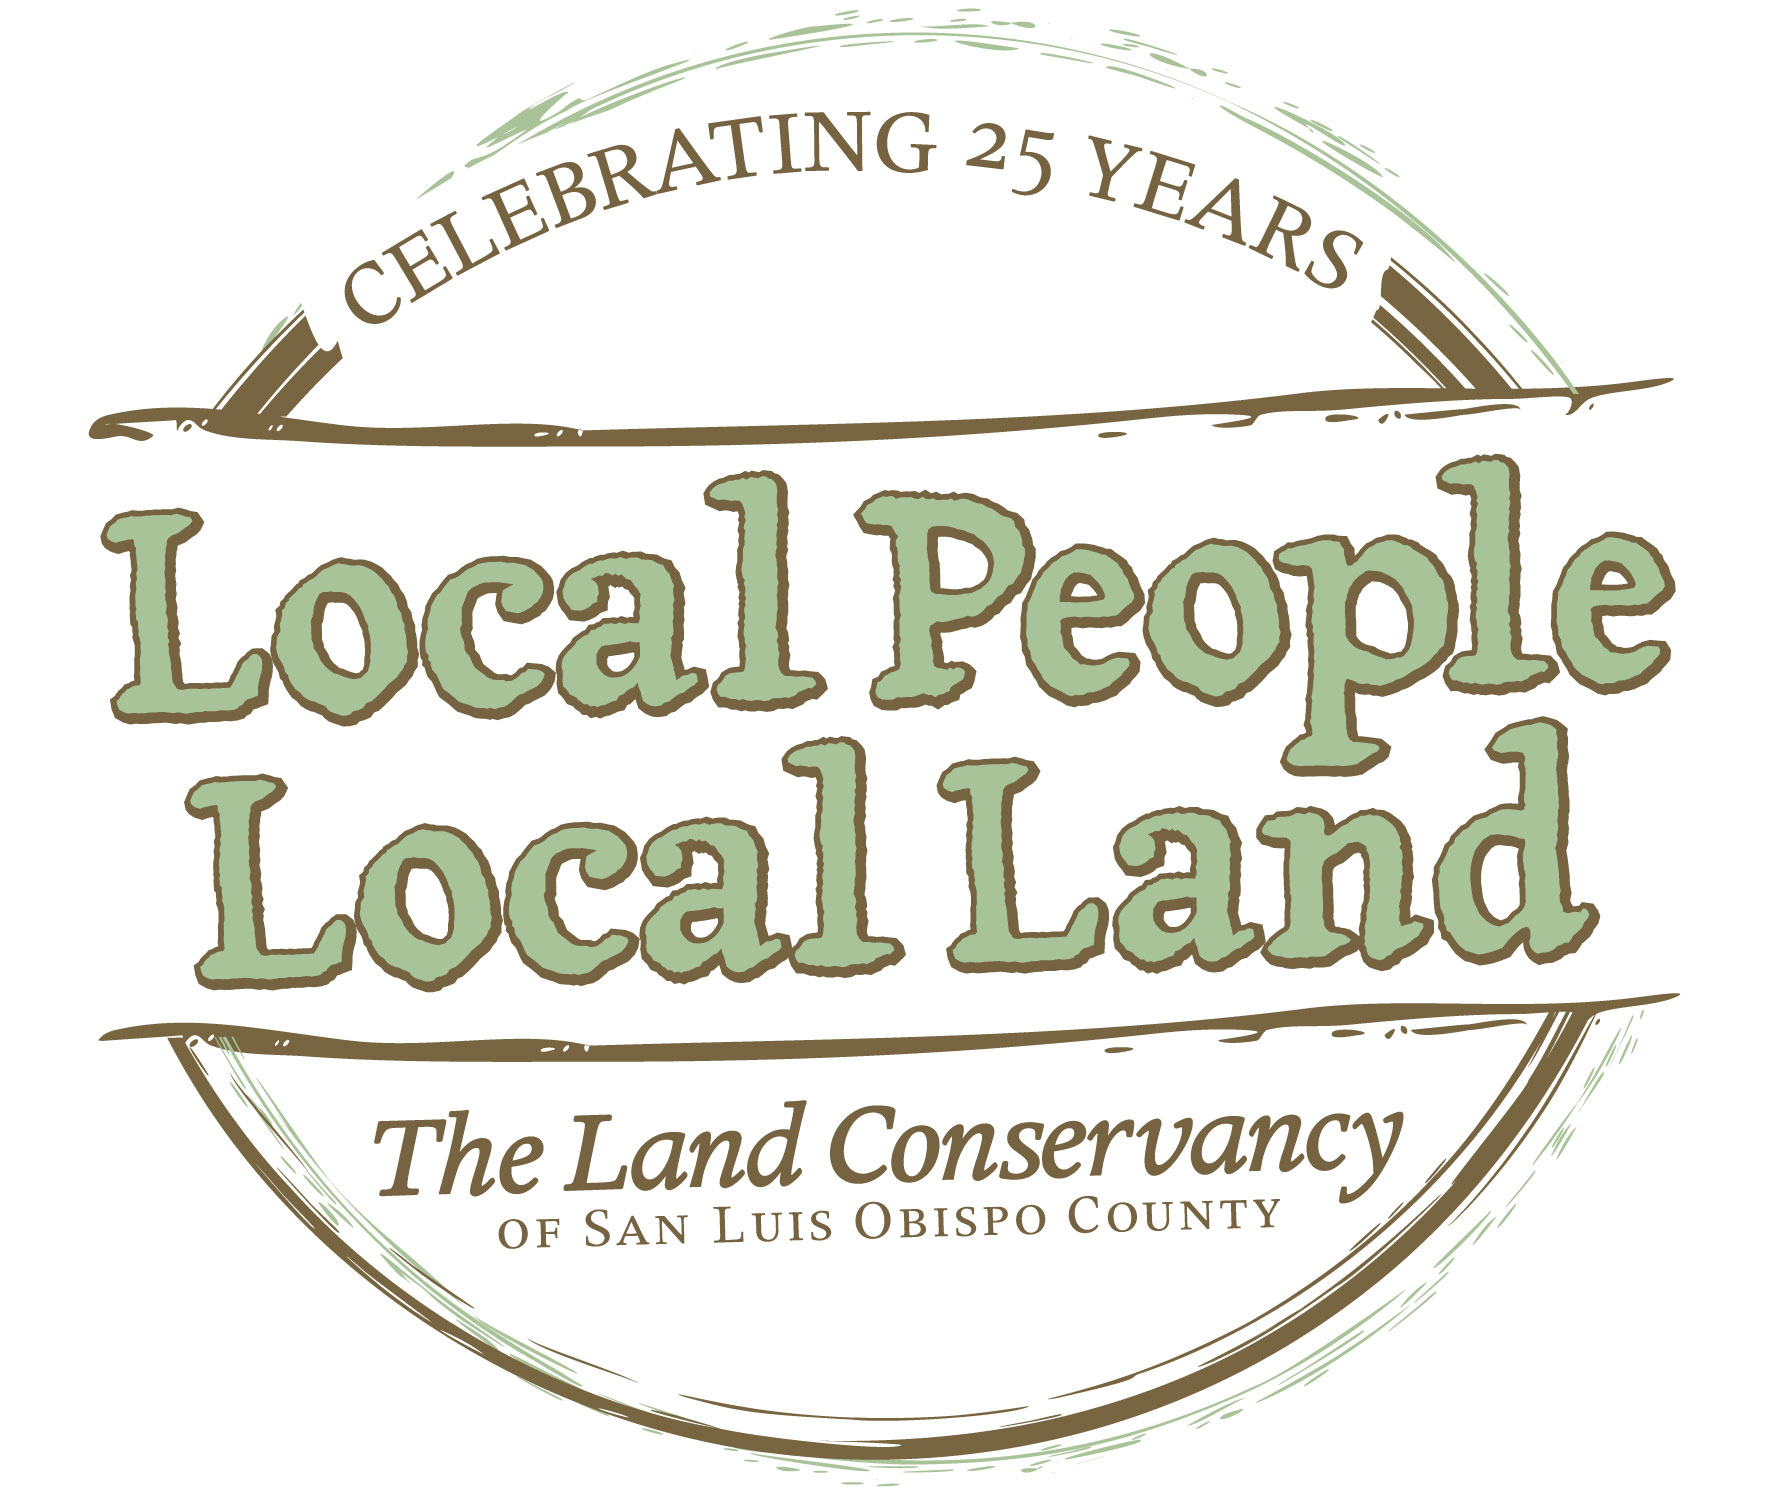 THE LAND CONSERVANCY OF SAN LUIS OBISPO COUNTY